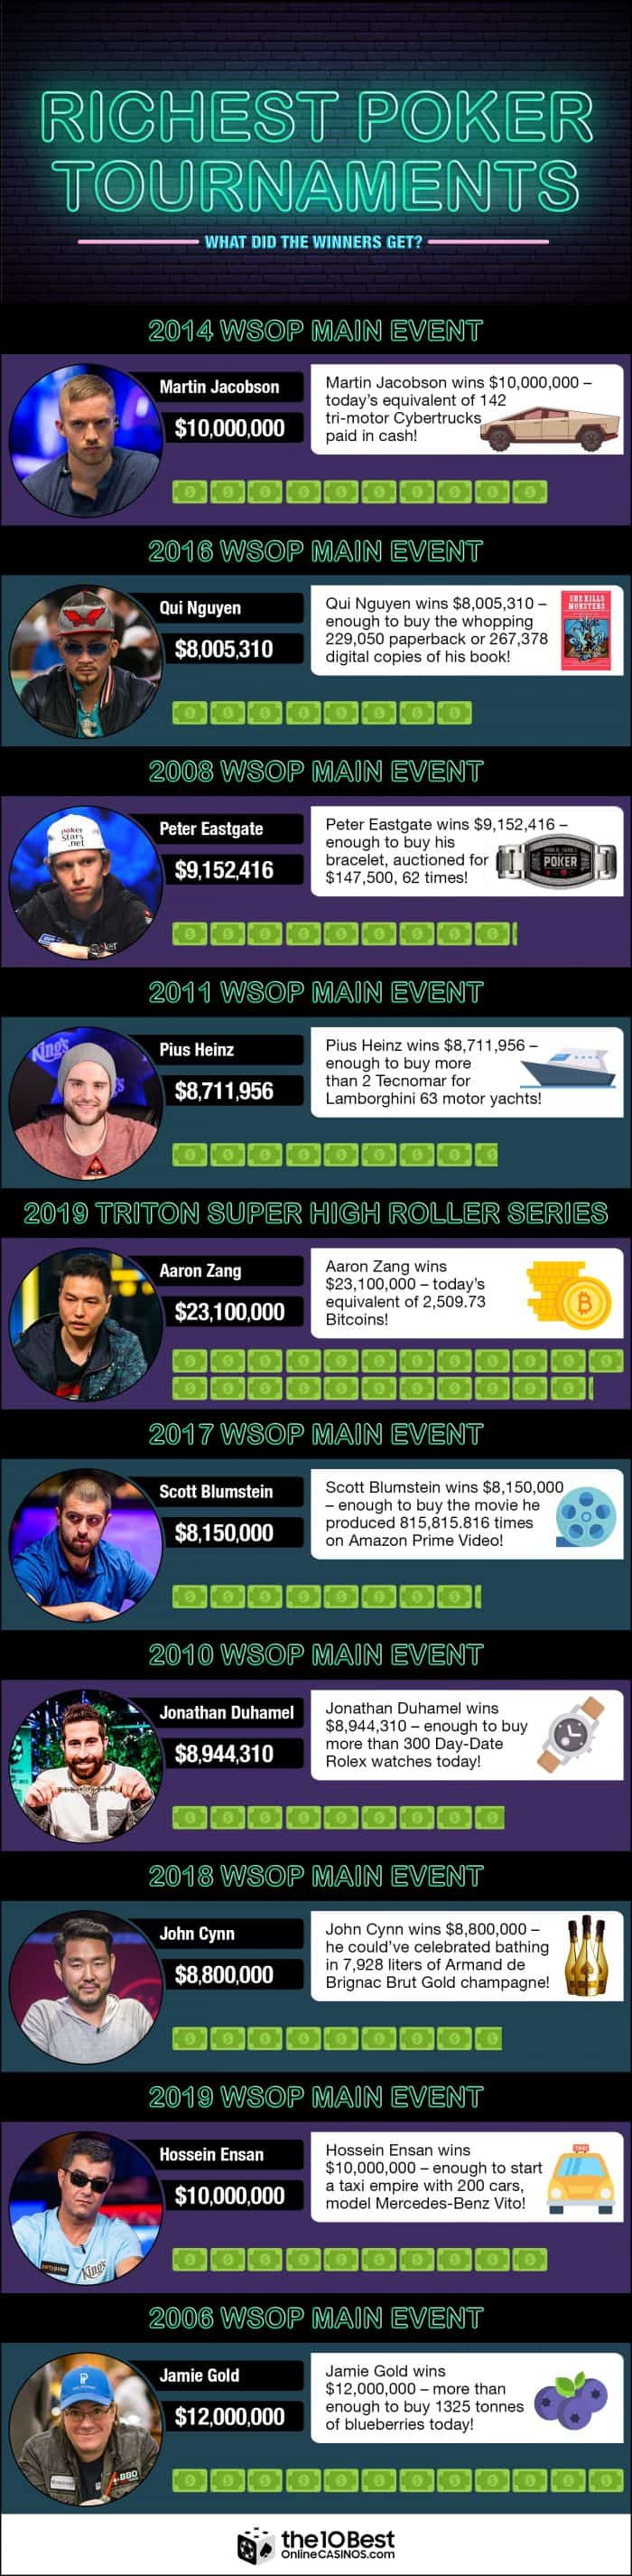 Top-10-Richest-Poker-Tournaments-and-Winners